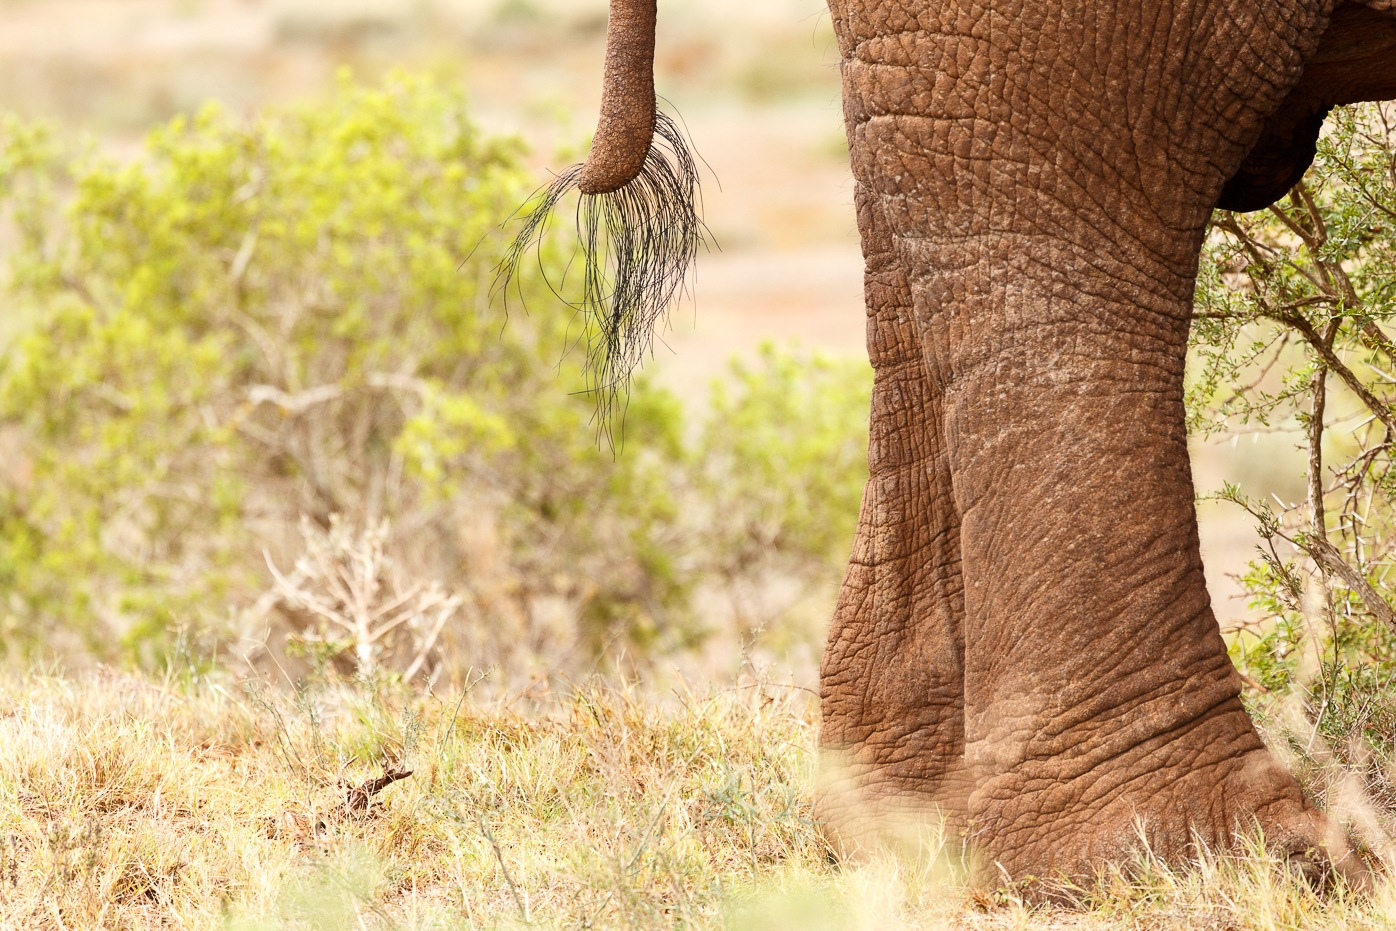 Tail and legs of a Bush Elephant  by Charissa de Scande Lotter